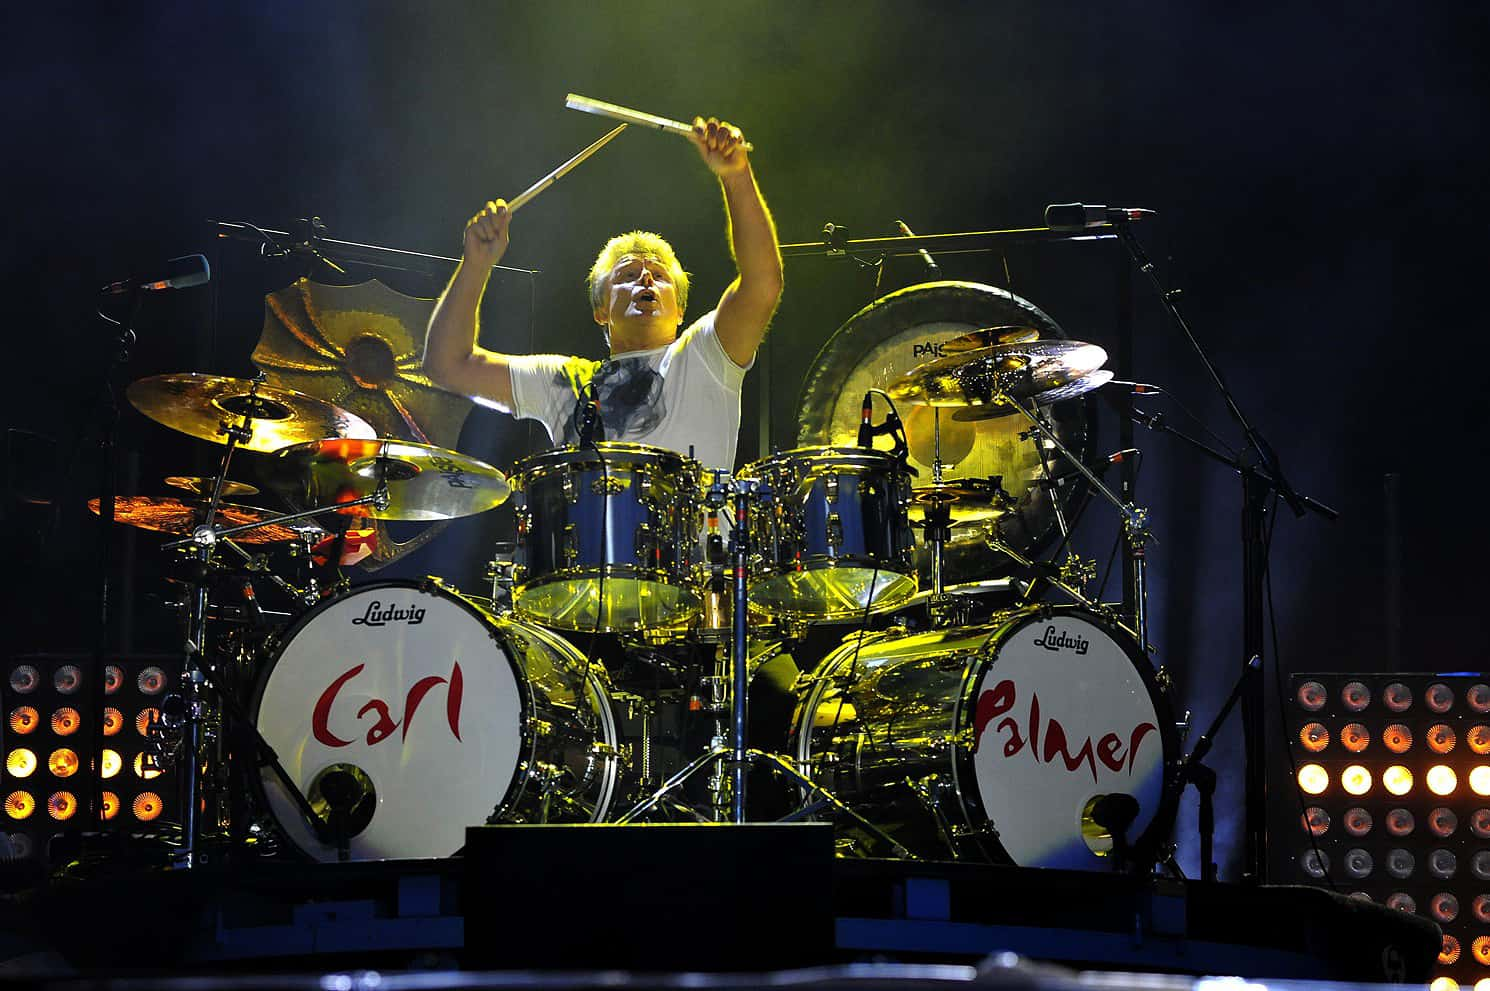 CARL PALMER BAND - 50 YRS OF EMERSON, LAKE & PALMER